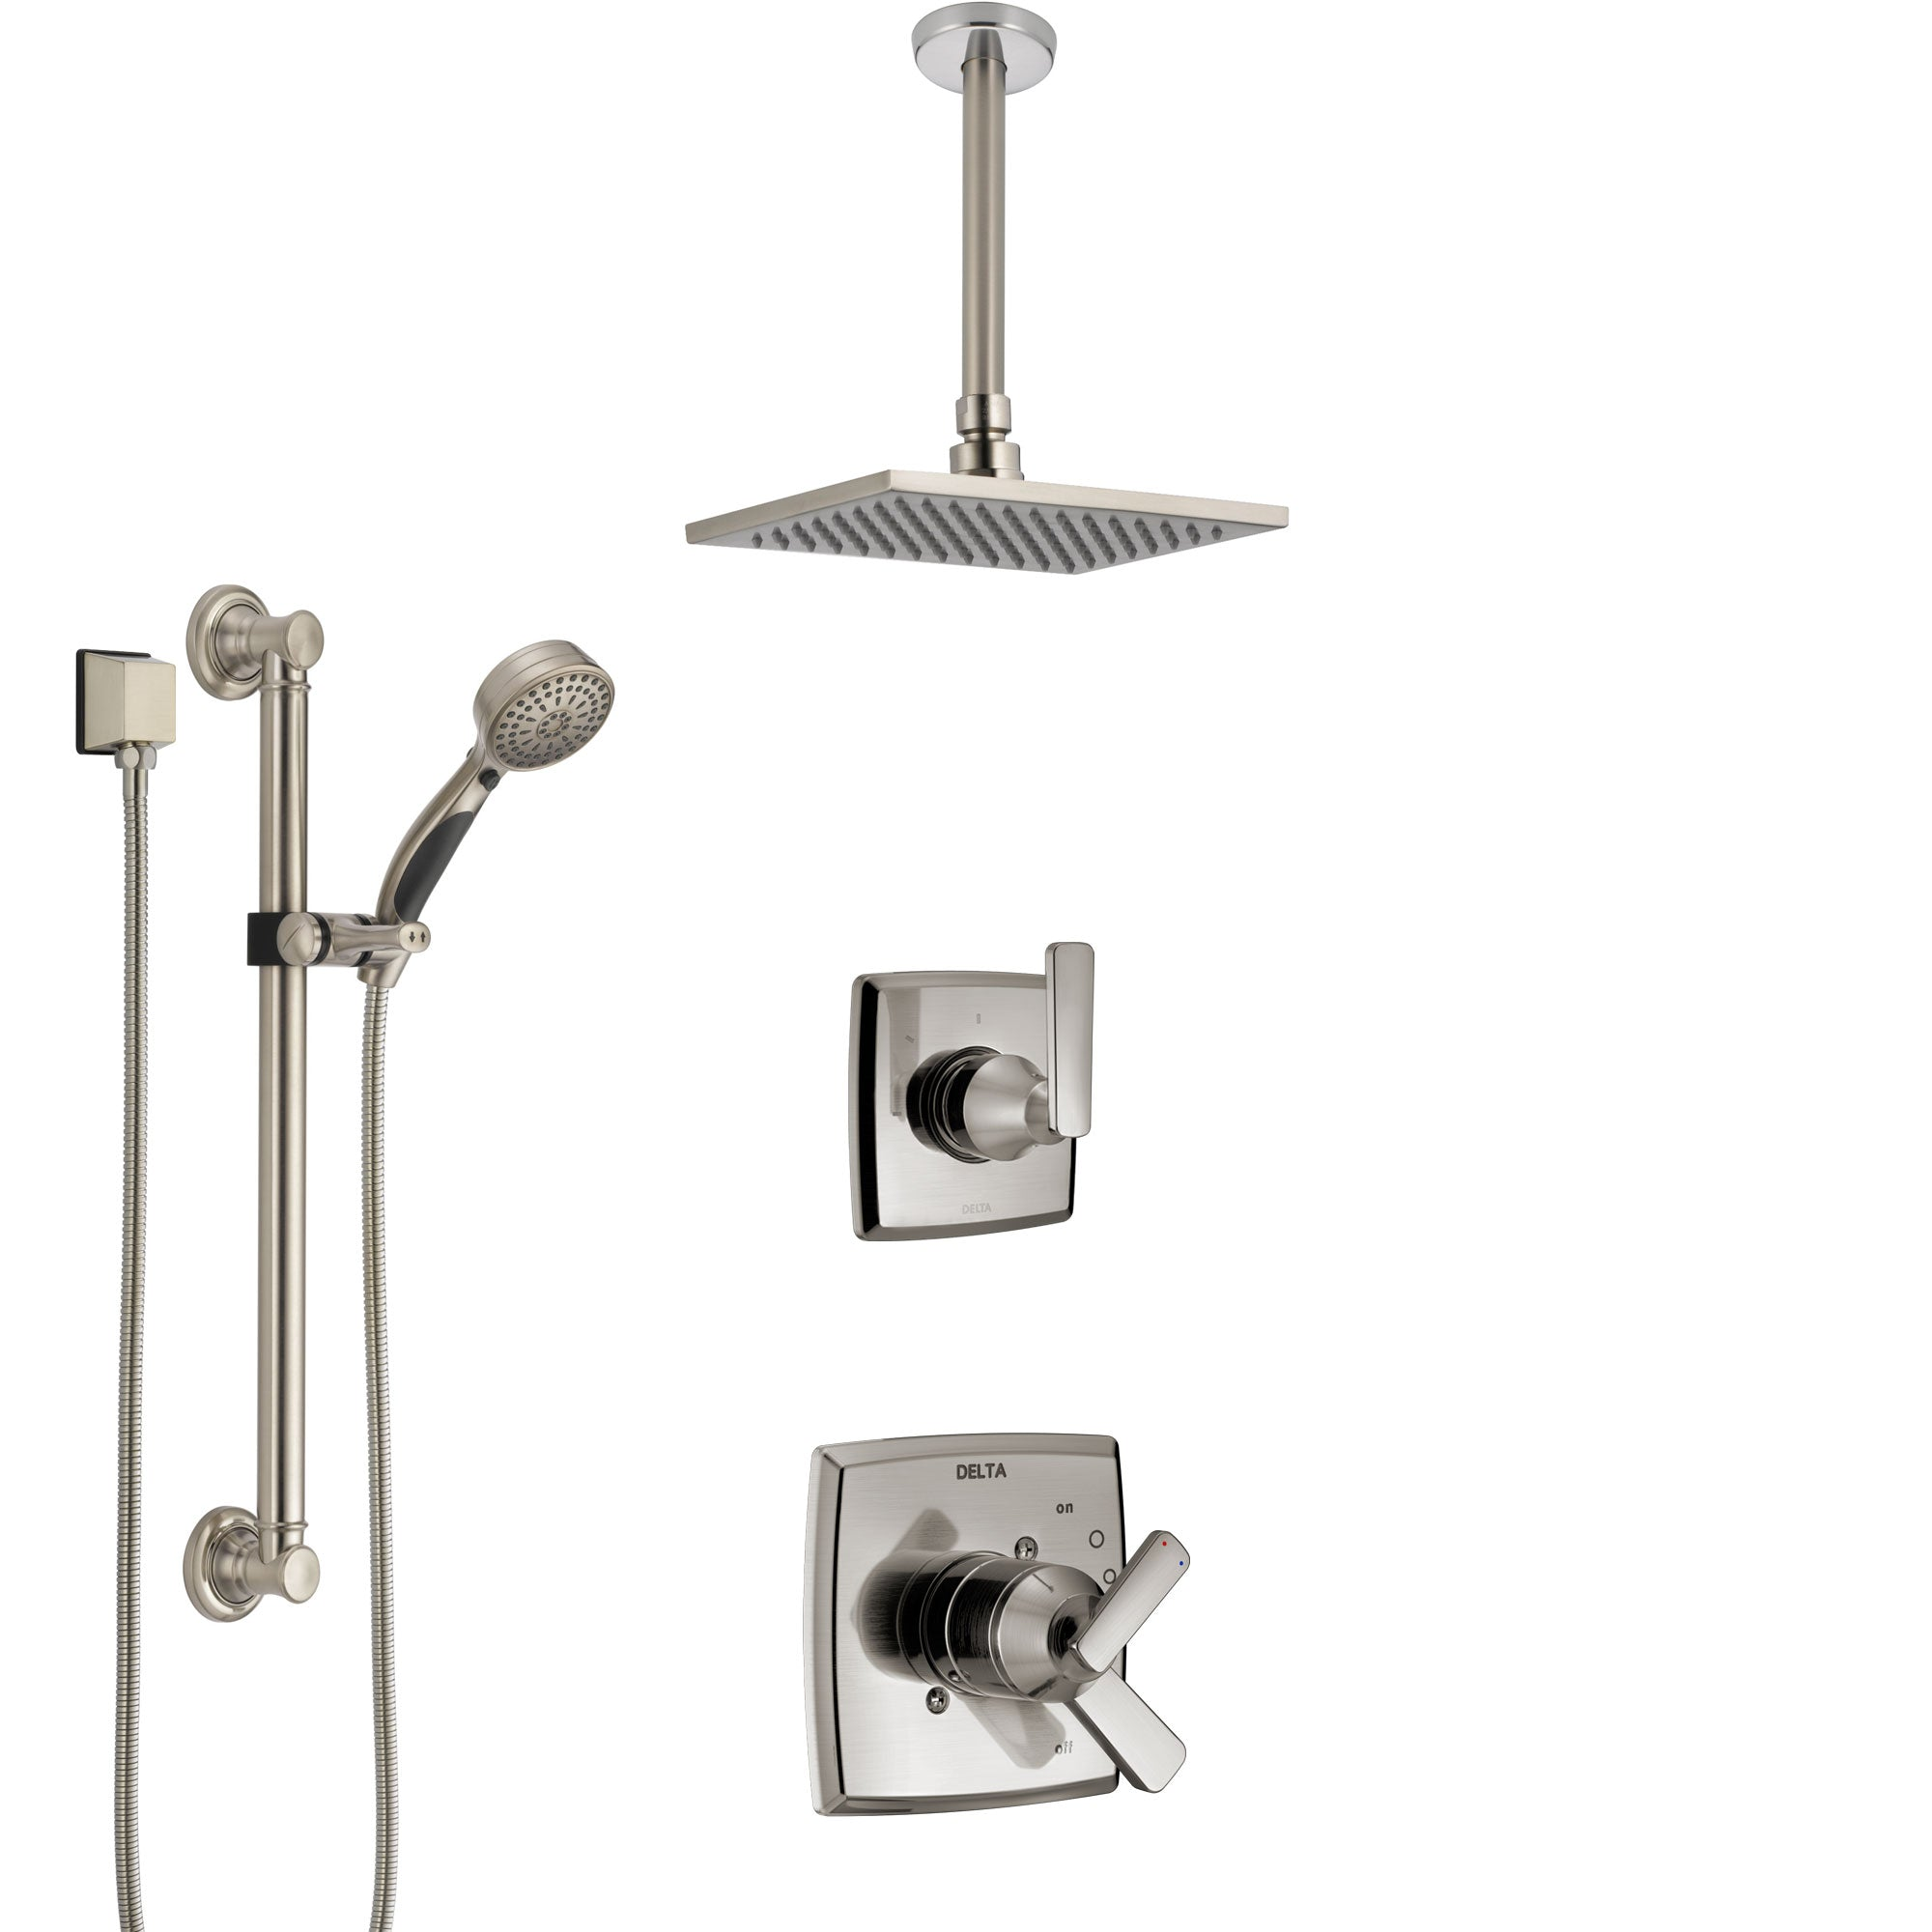 Delta Ashlyn Dual Control Handle Stainless Steel Finish Shower System, Diverter, Ceiling Mount Showerhead, and Hand Shower with Grab Bar SS1764SS2